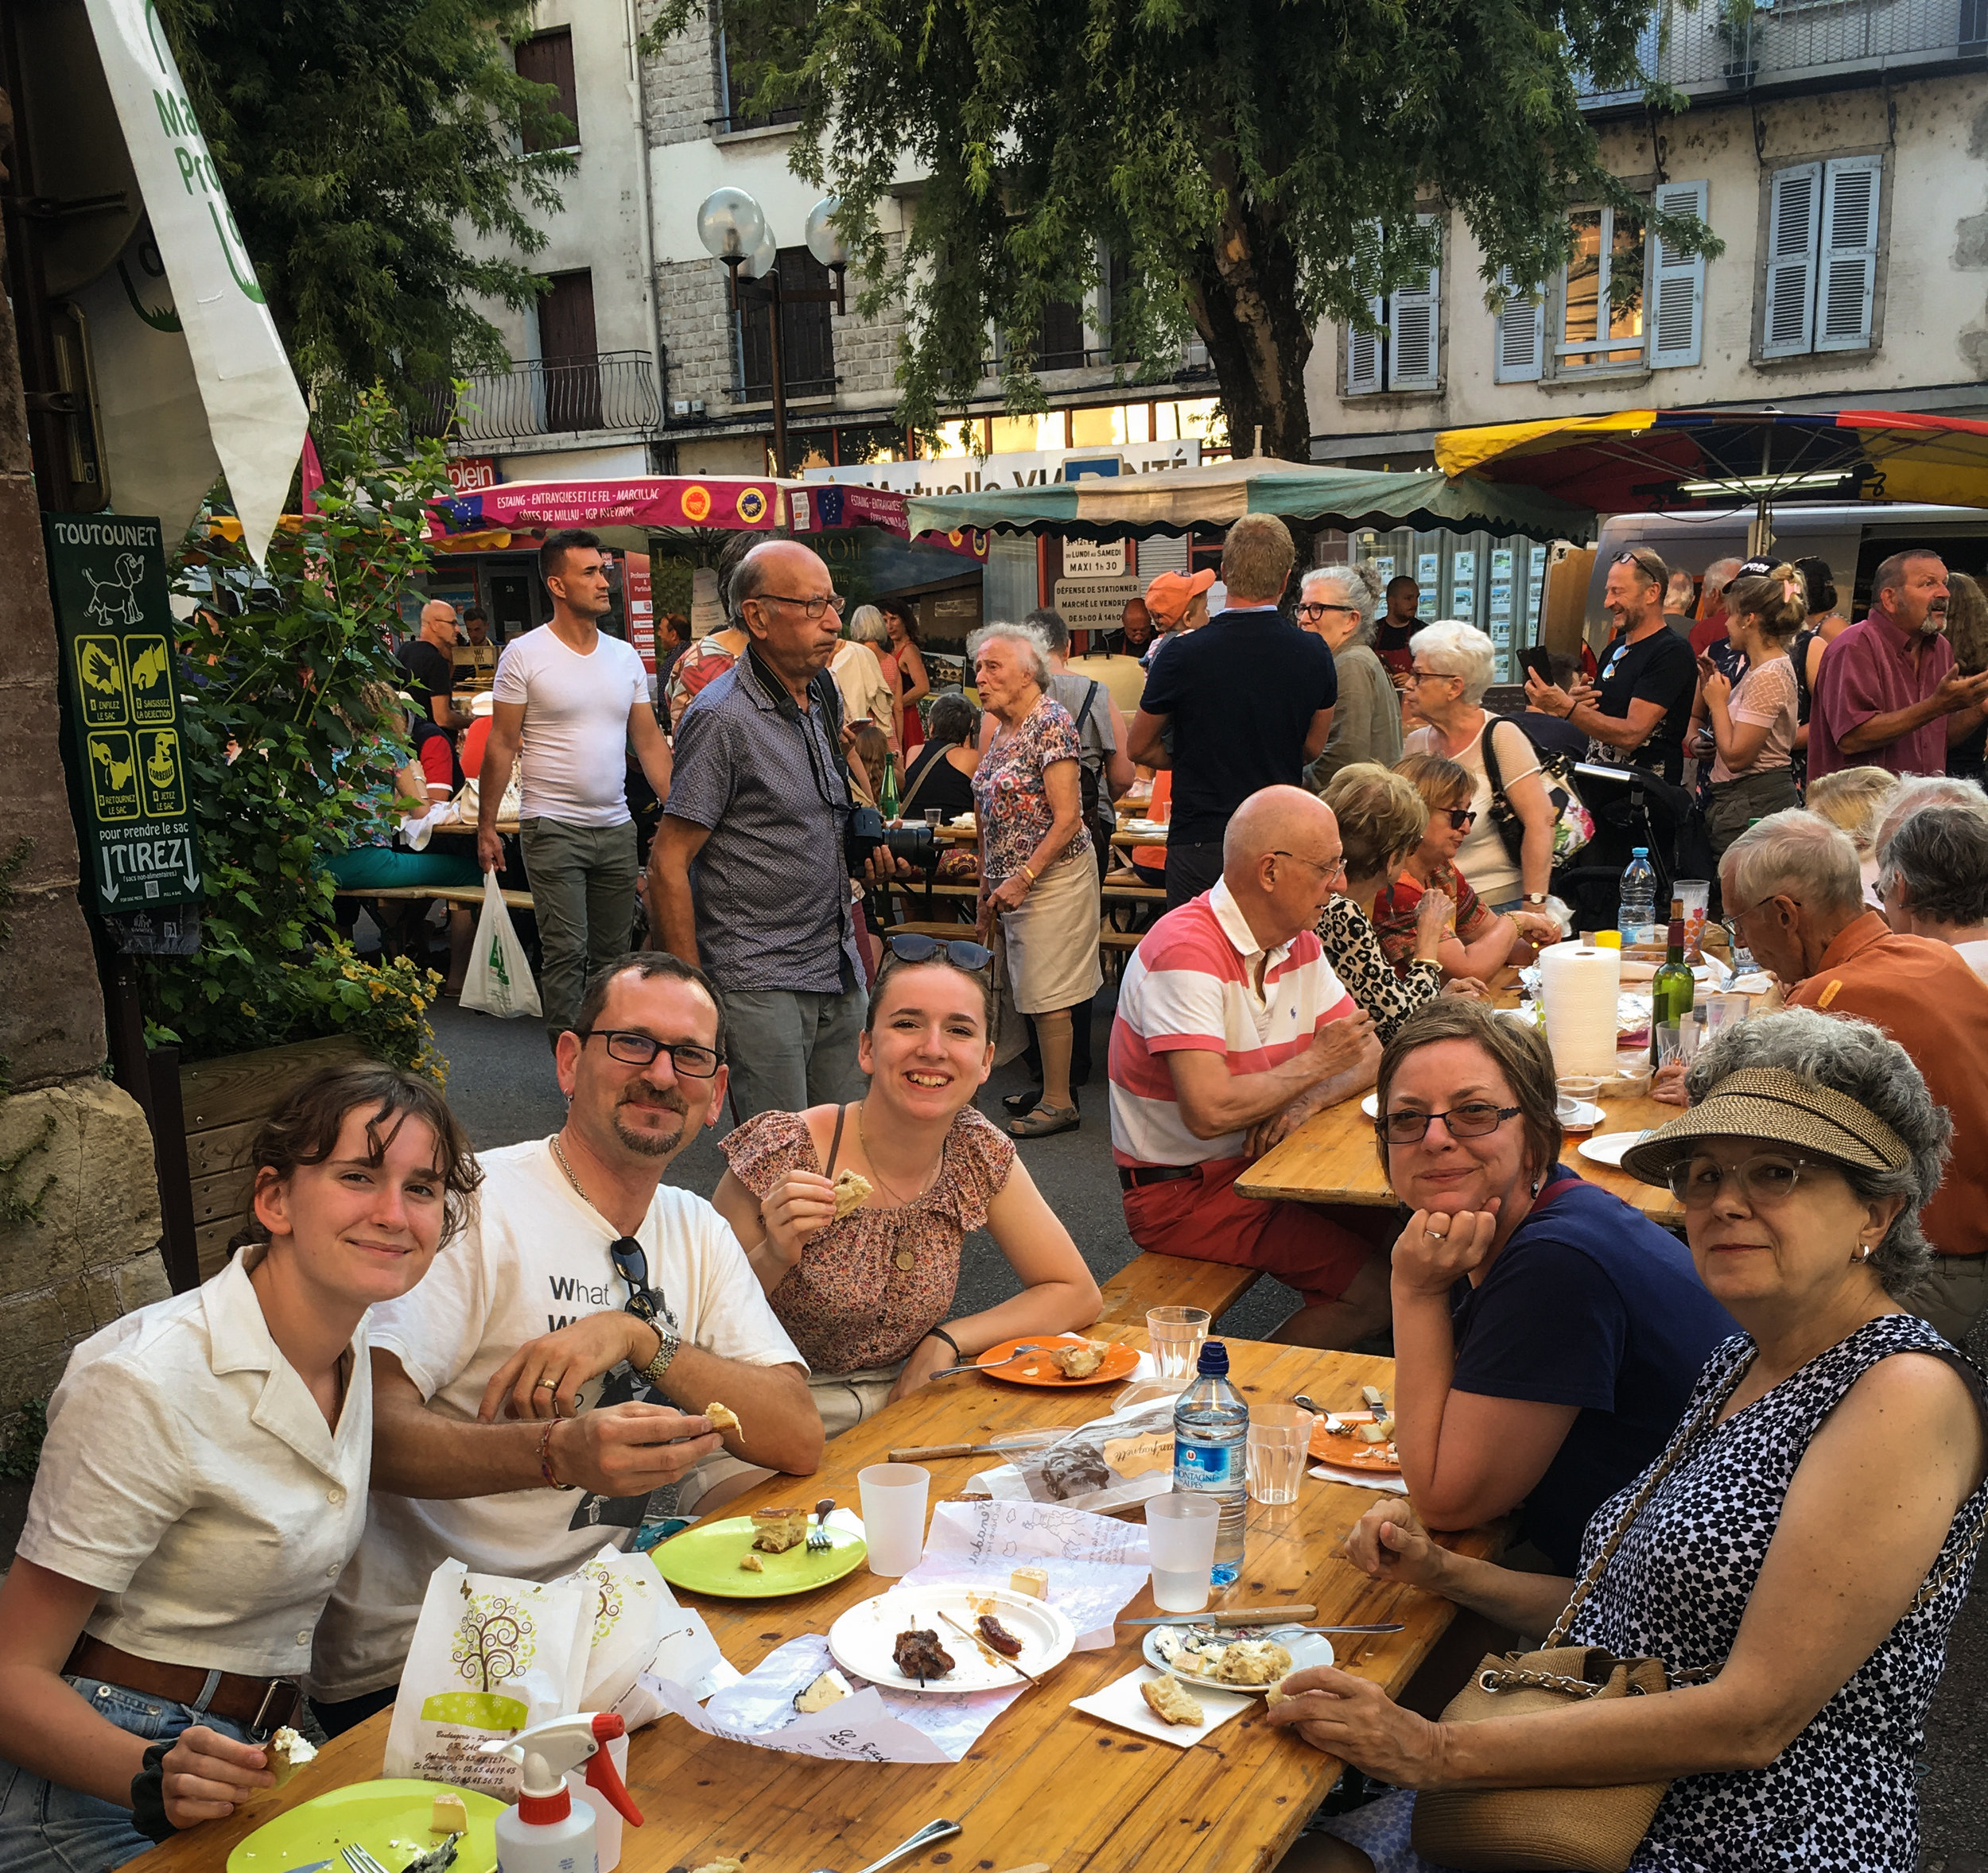 Dinner for the entire family at Espalion nightly Farmers' Market. A full immersion in the real France and its culture.